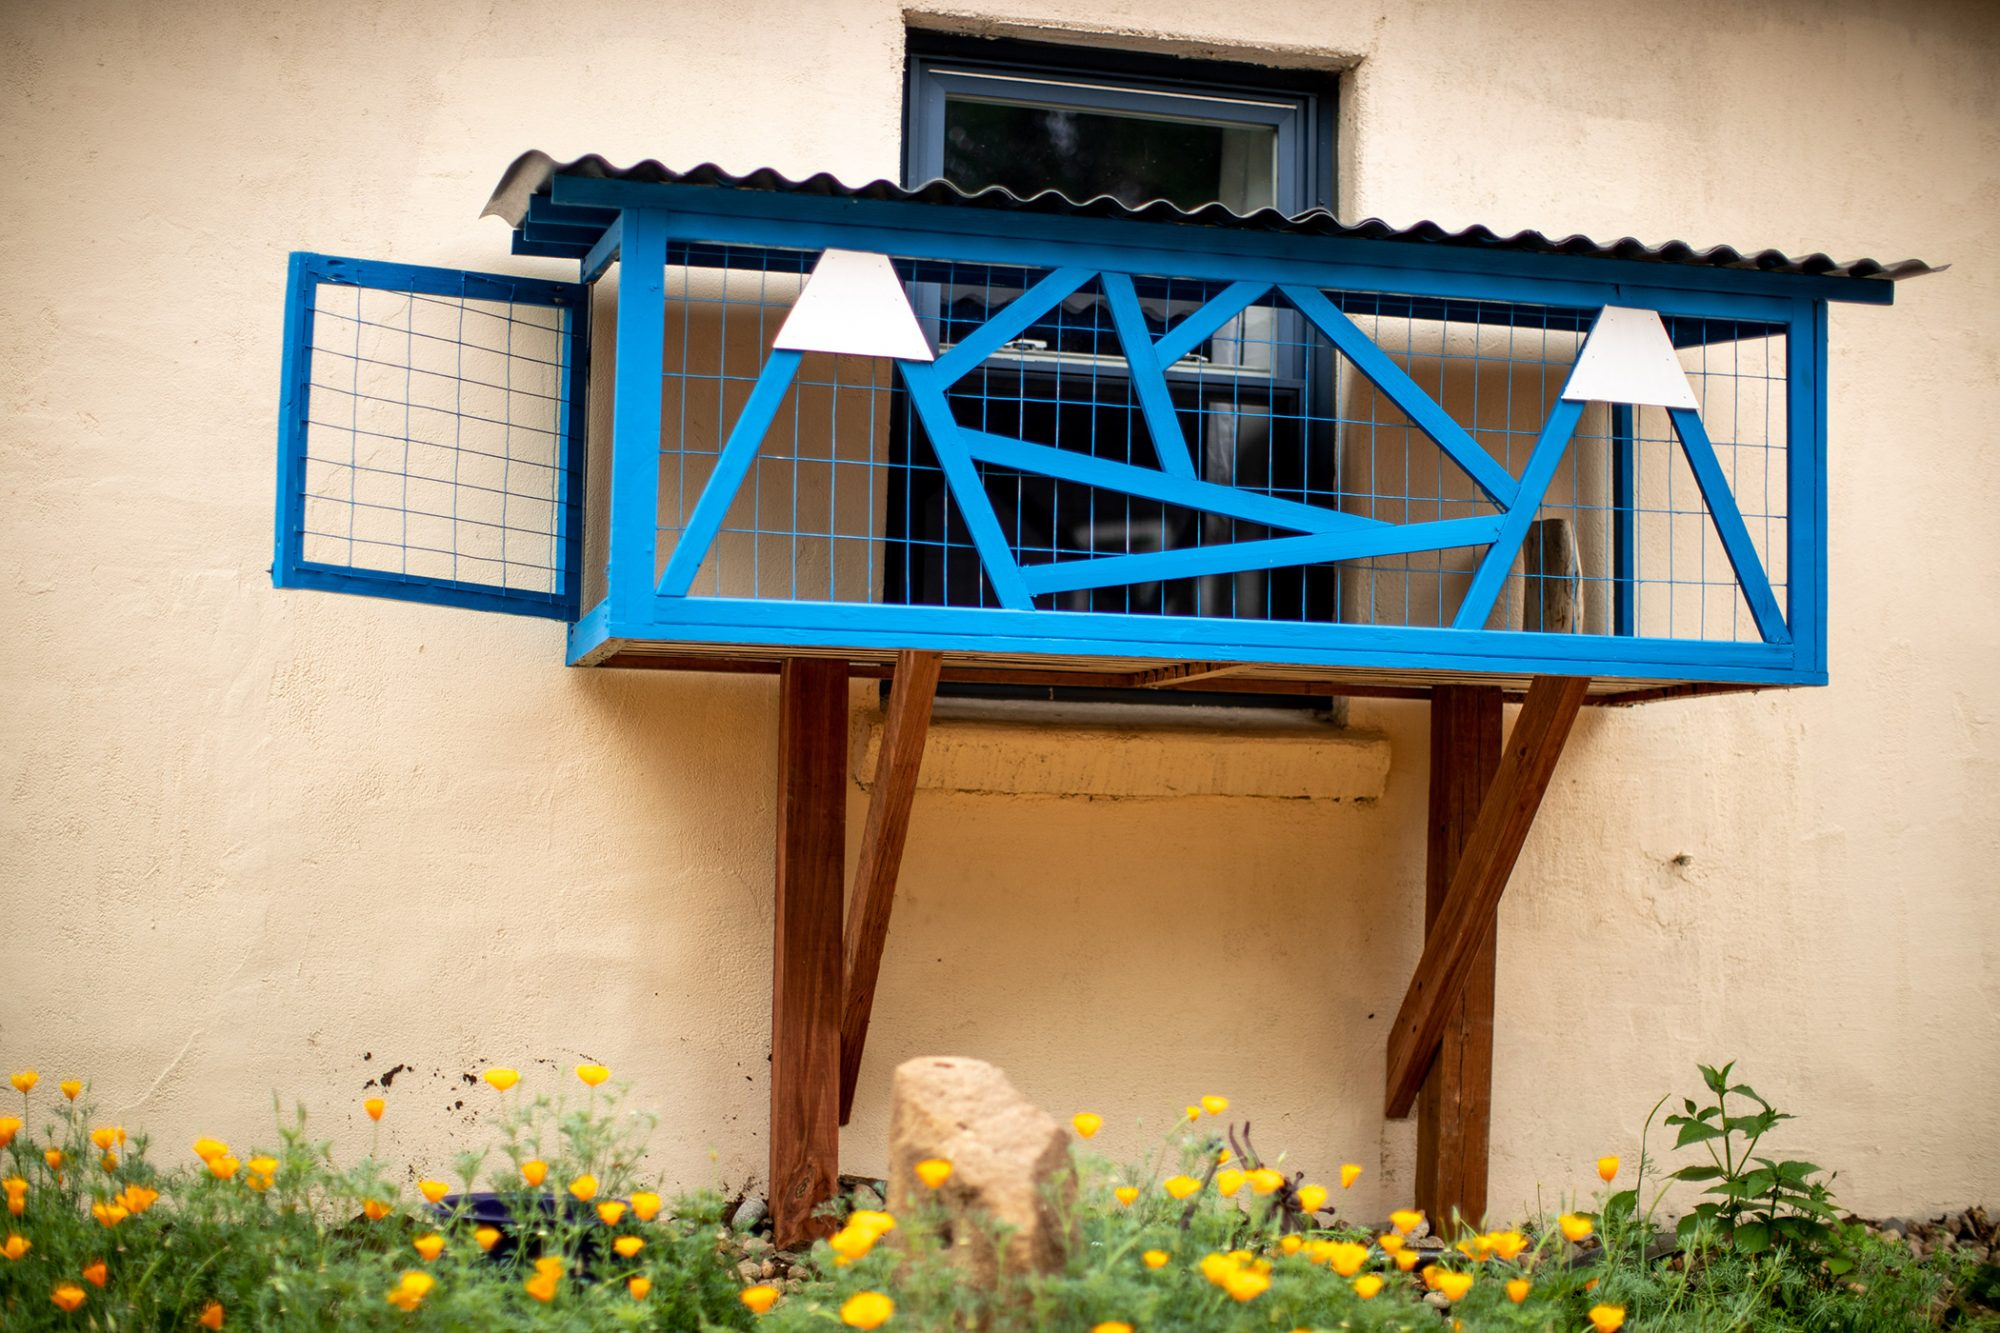 Catio with blue frame in front of window